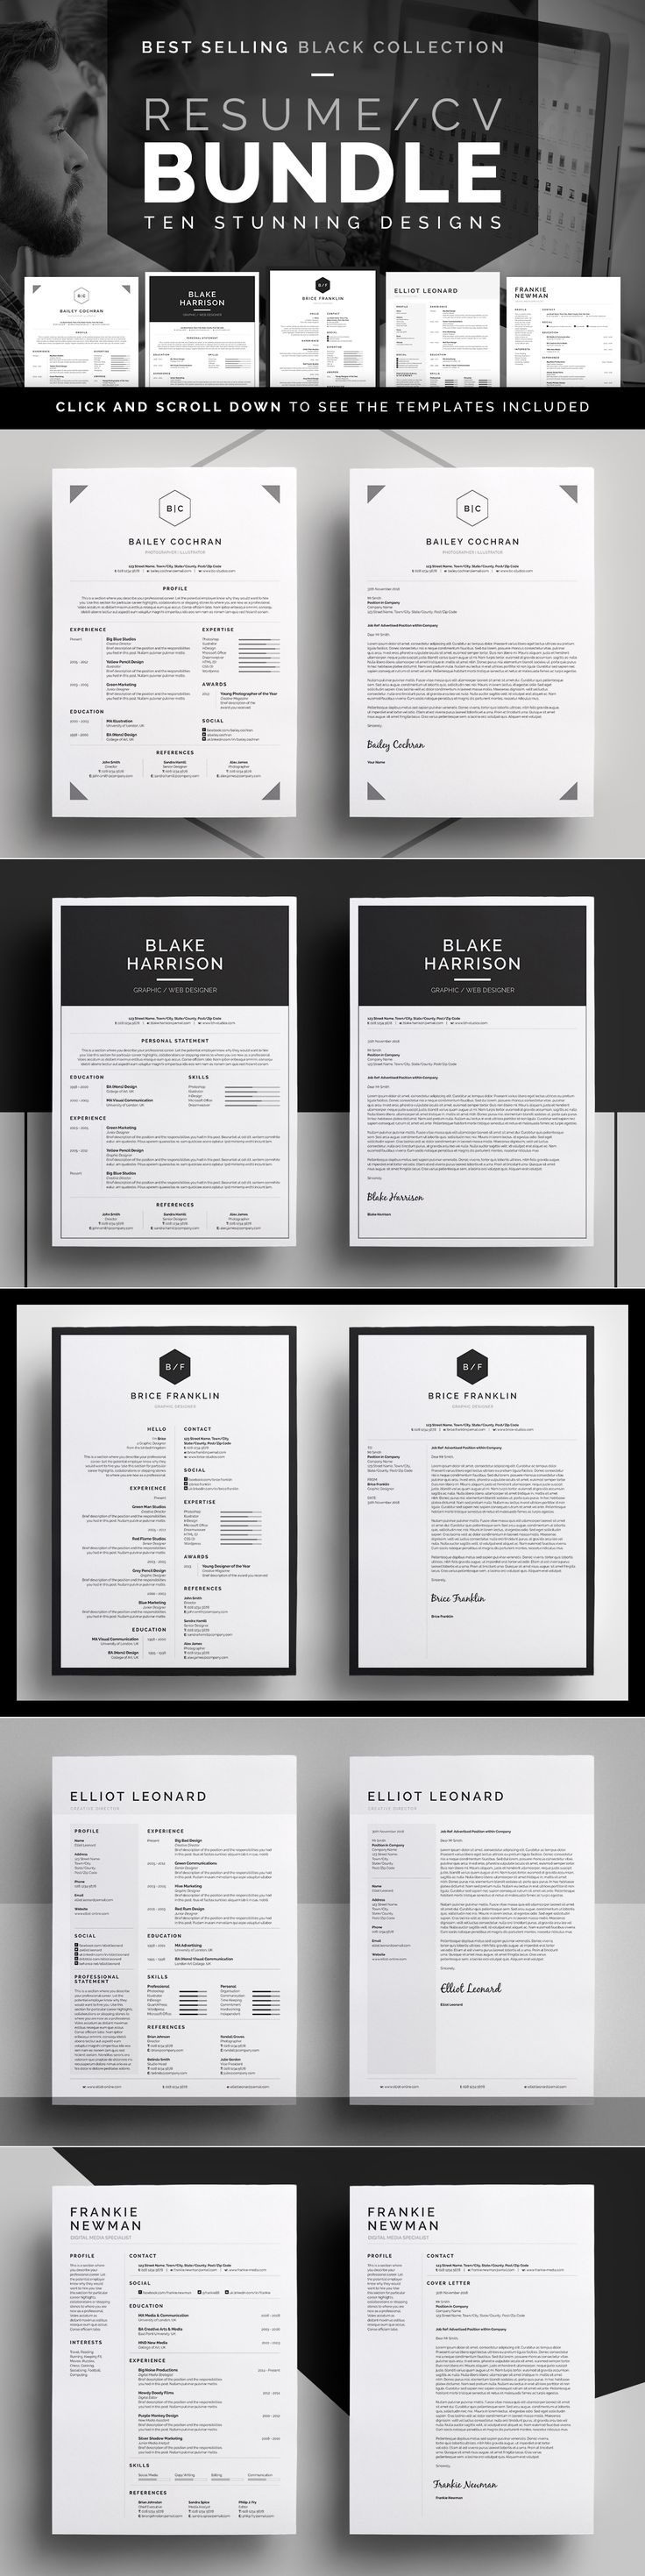 resumecv bundle 10 classic designs with cover letters matching business